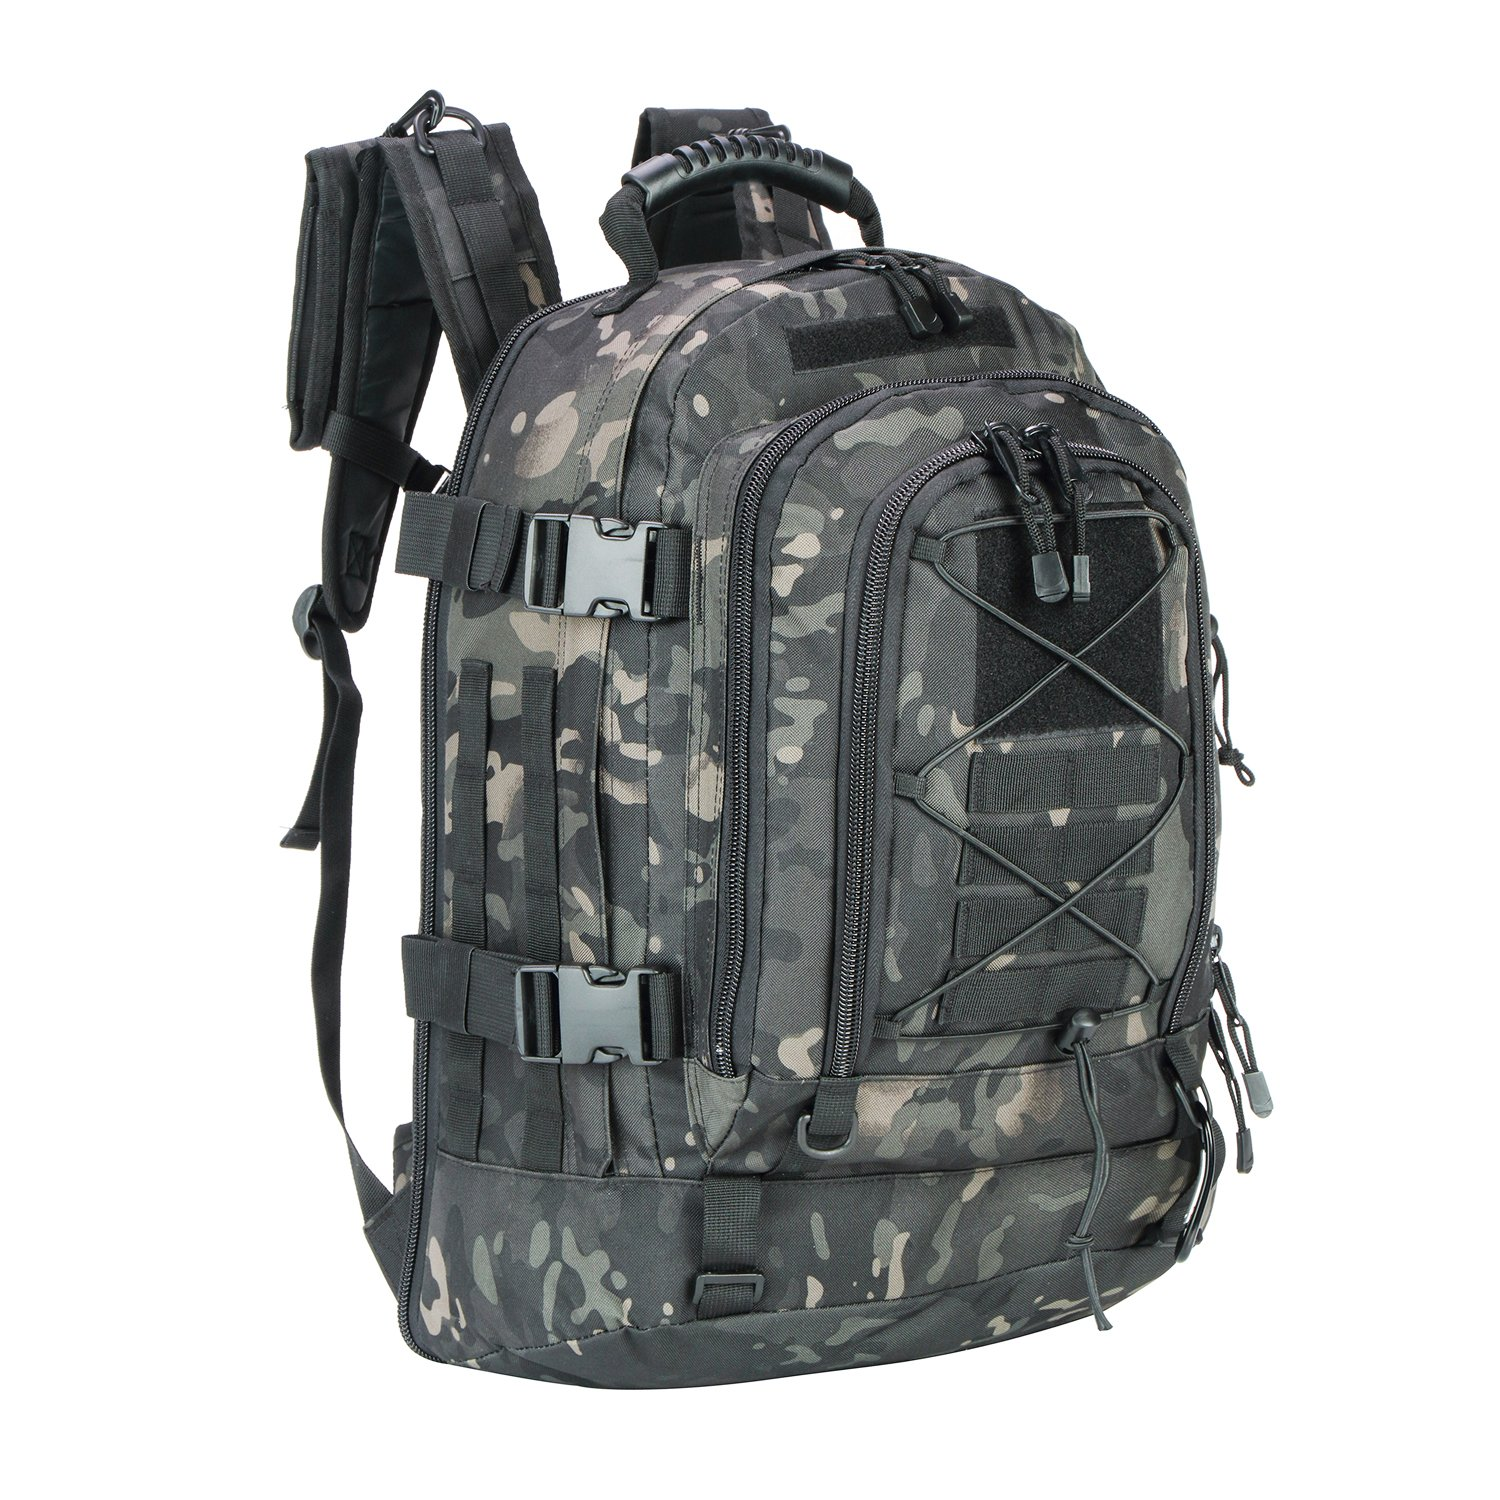 PANS Military Expandable Travel Backpack Tactical Waterproof Outdoor 3-Day Bag,Large,Molle System for Travel,Hiking,Camping,Trekking,Outdoor Sports,Work(Black-Multicam)